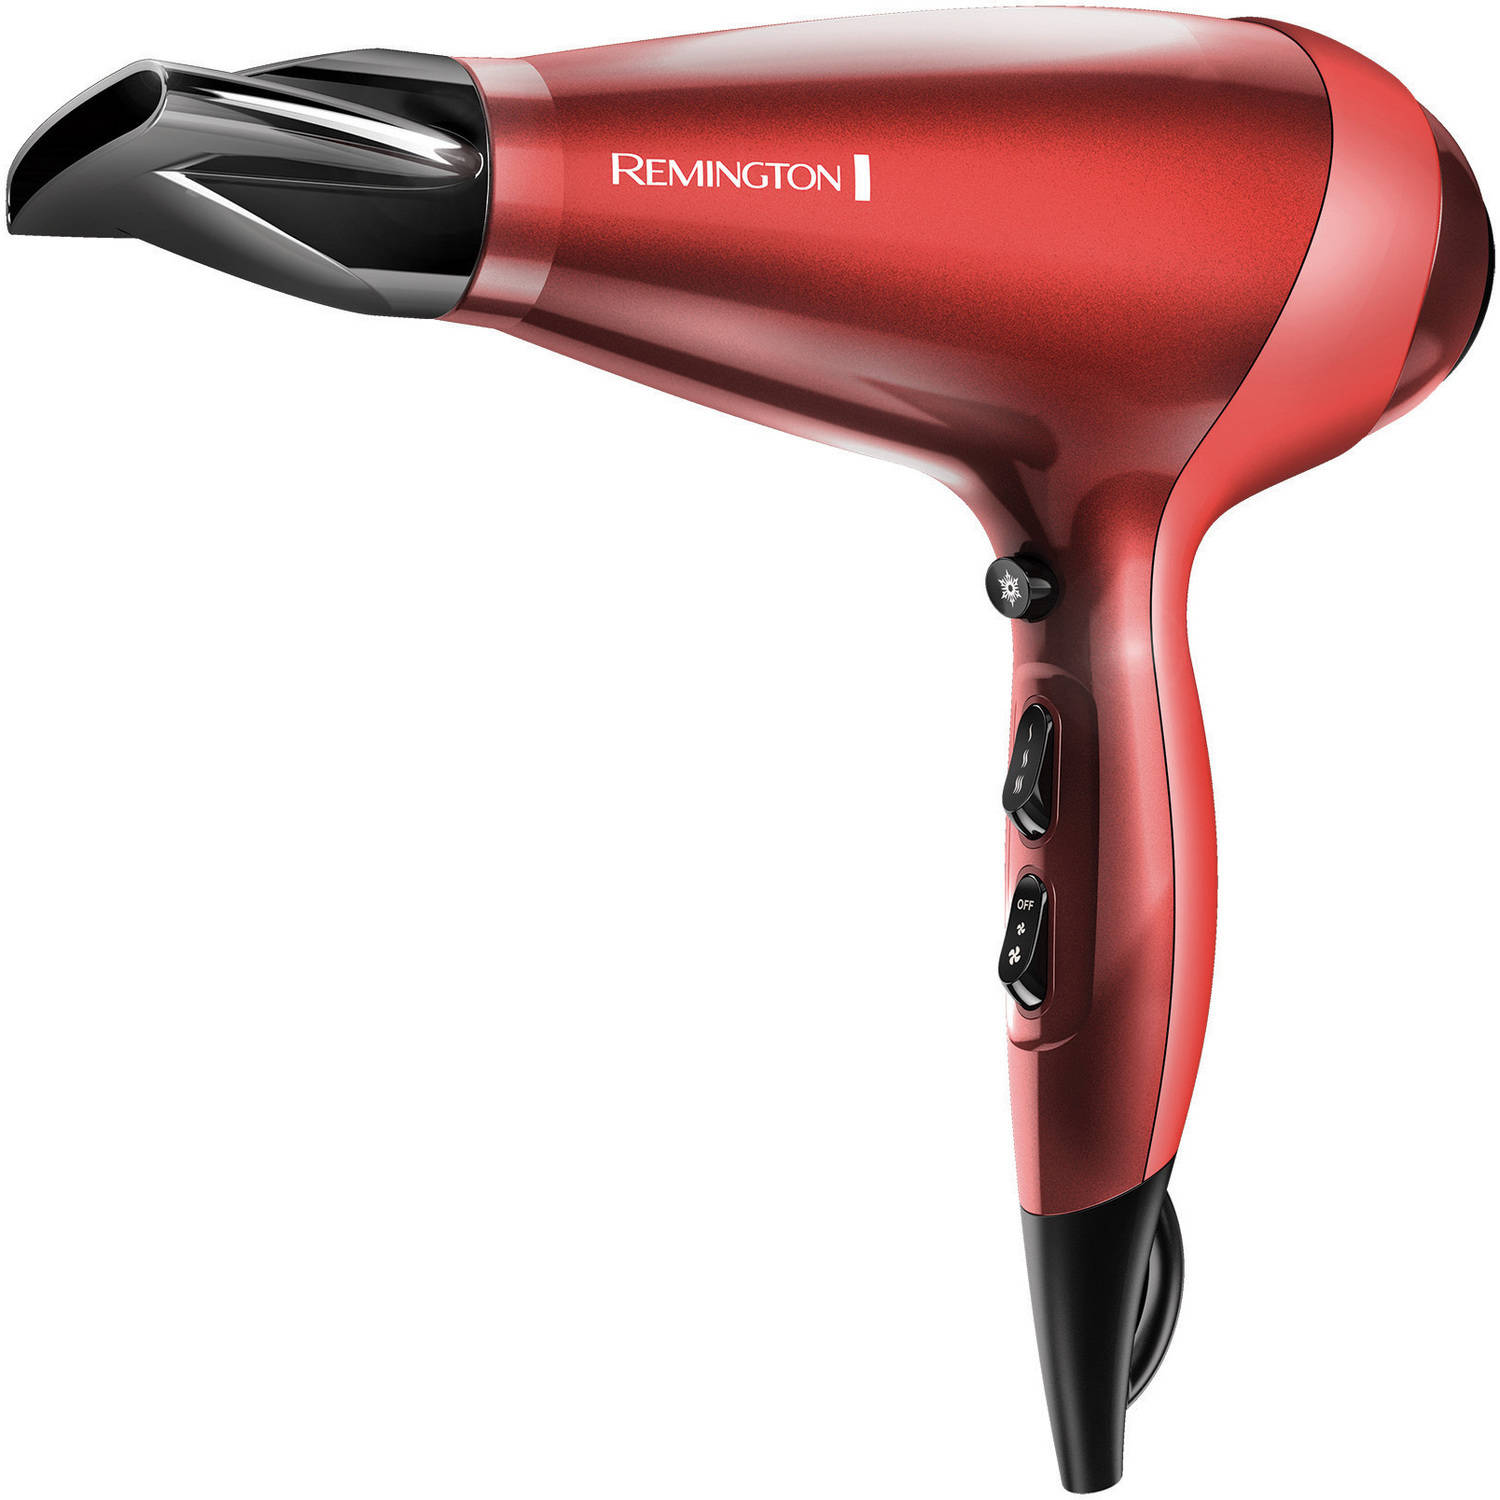 Remington T-Studio Silk Ceramic Hair Dryer, AC9096